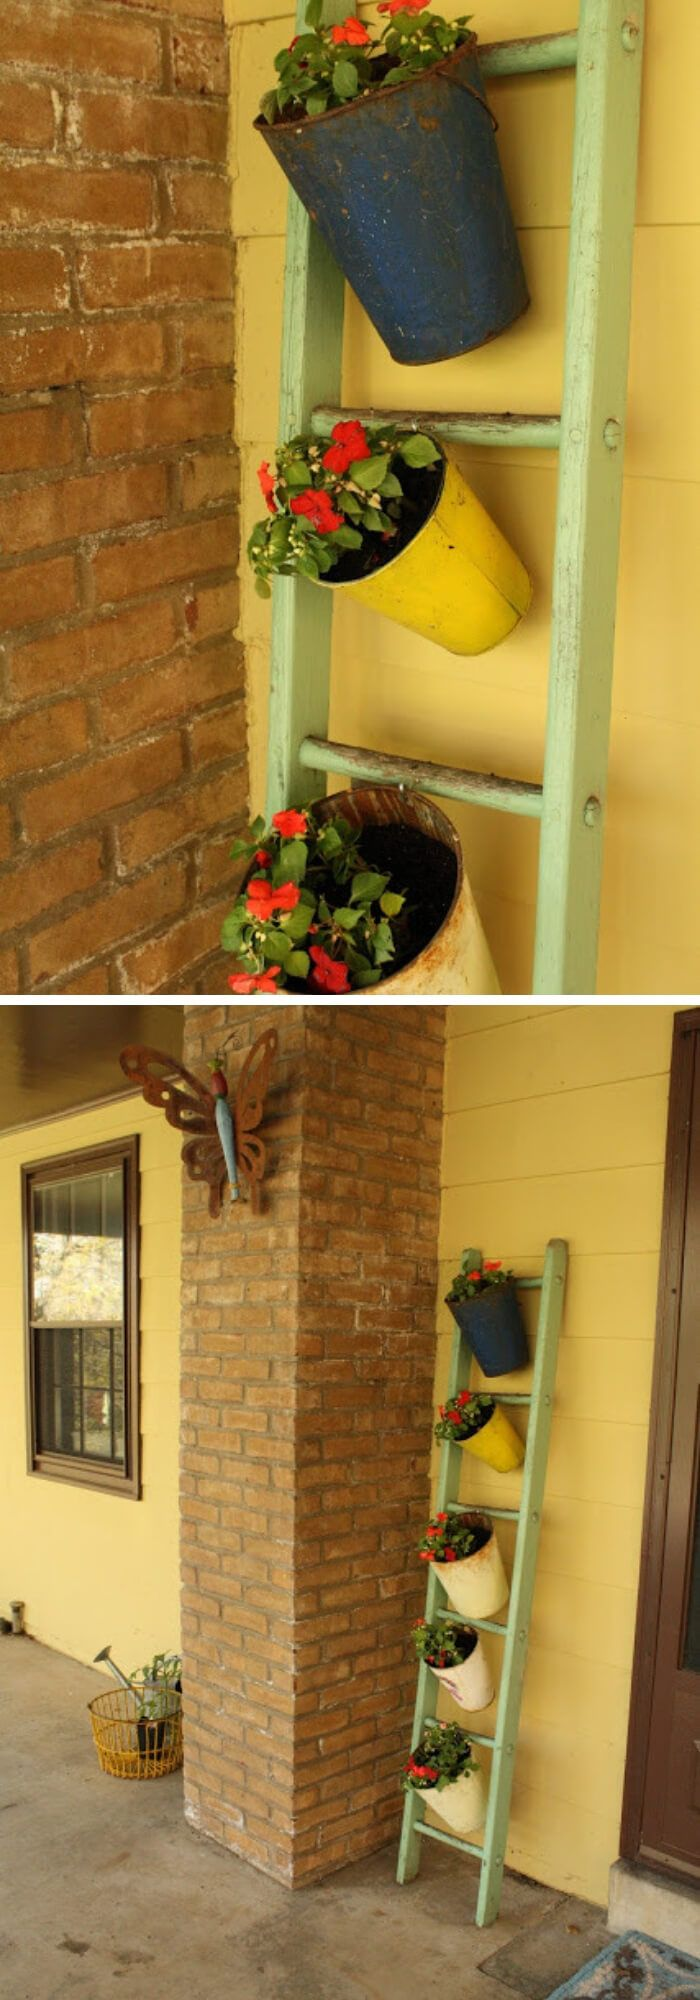 15 creative porch planter ideas designs for your house on easy diy woodworking projects to decor your home kinds of wooden planters id=69944